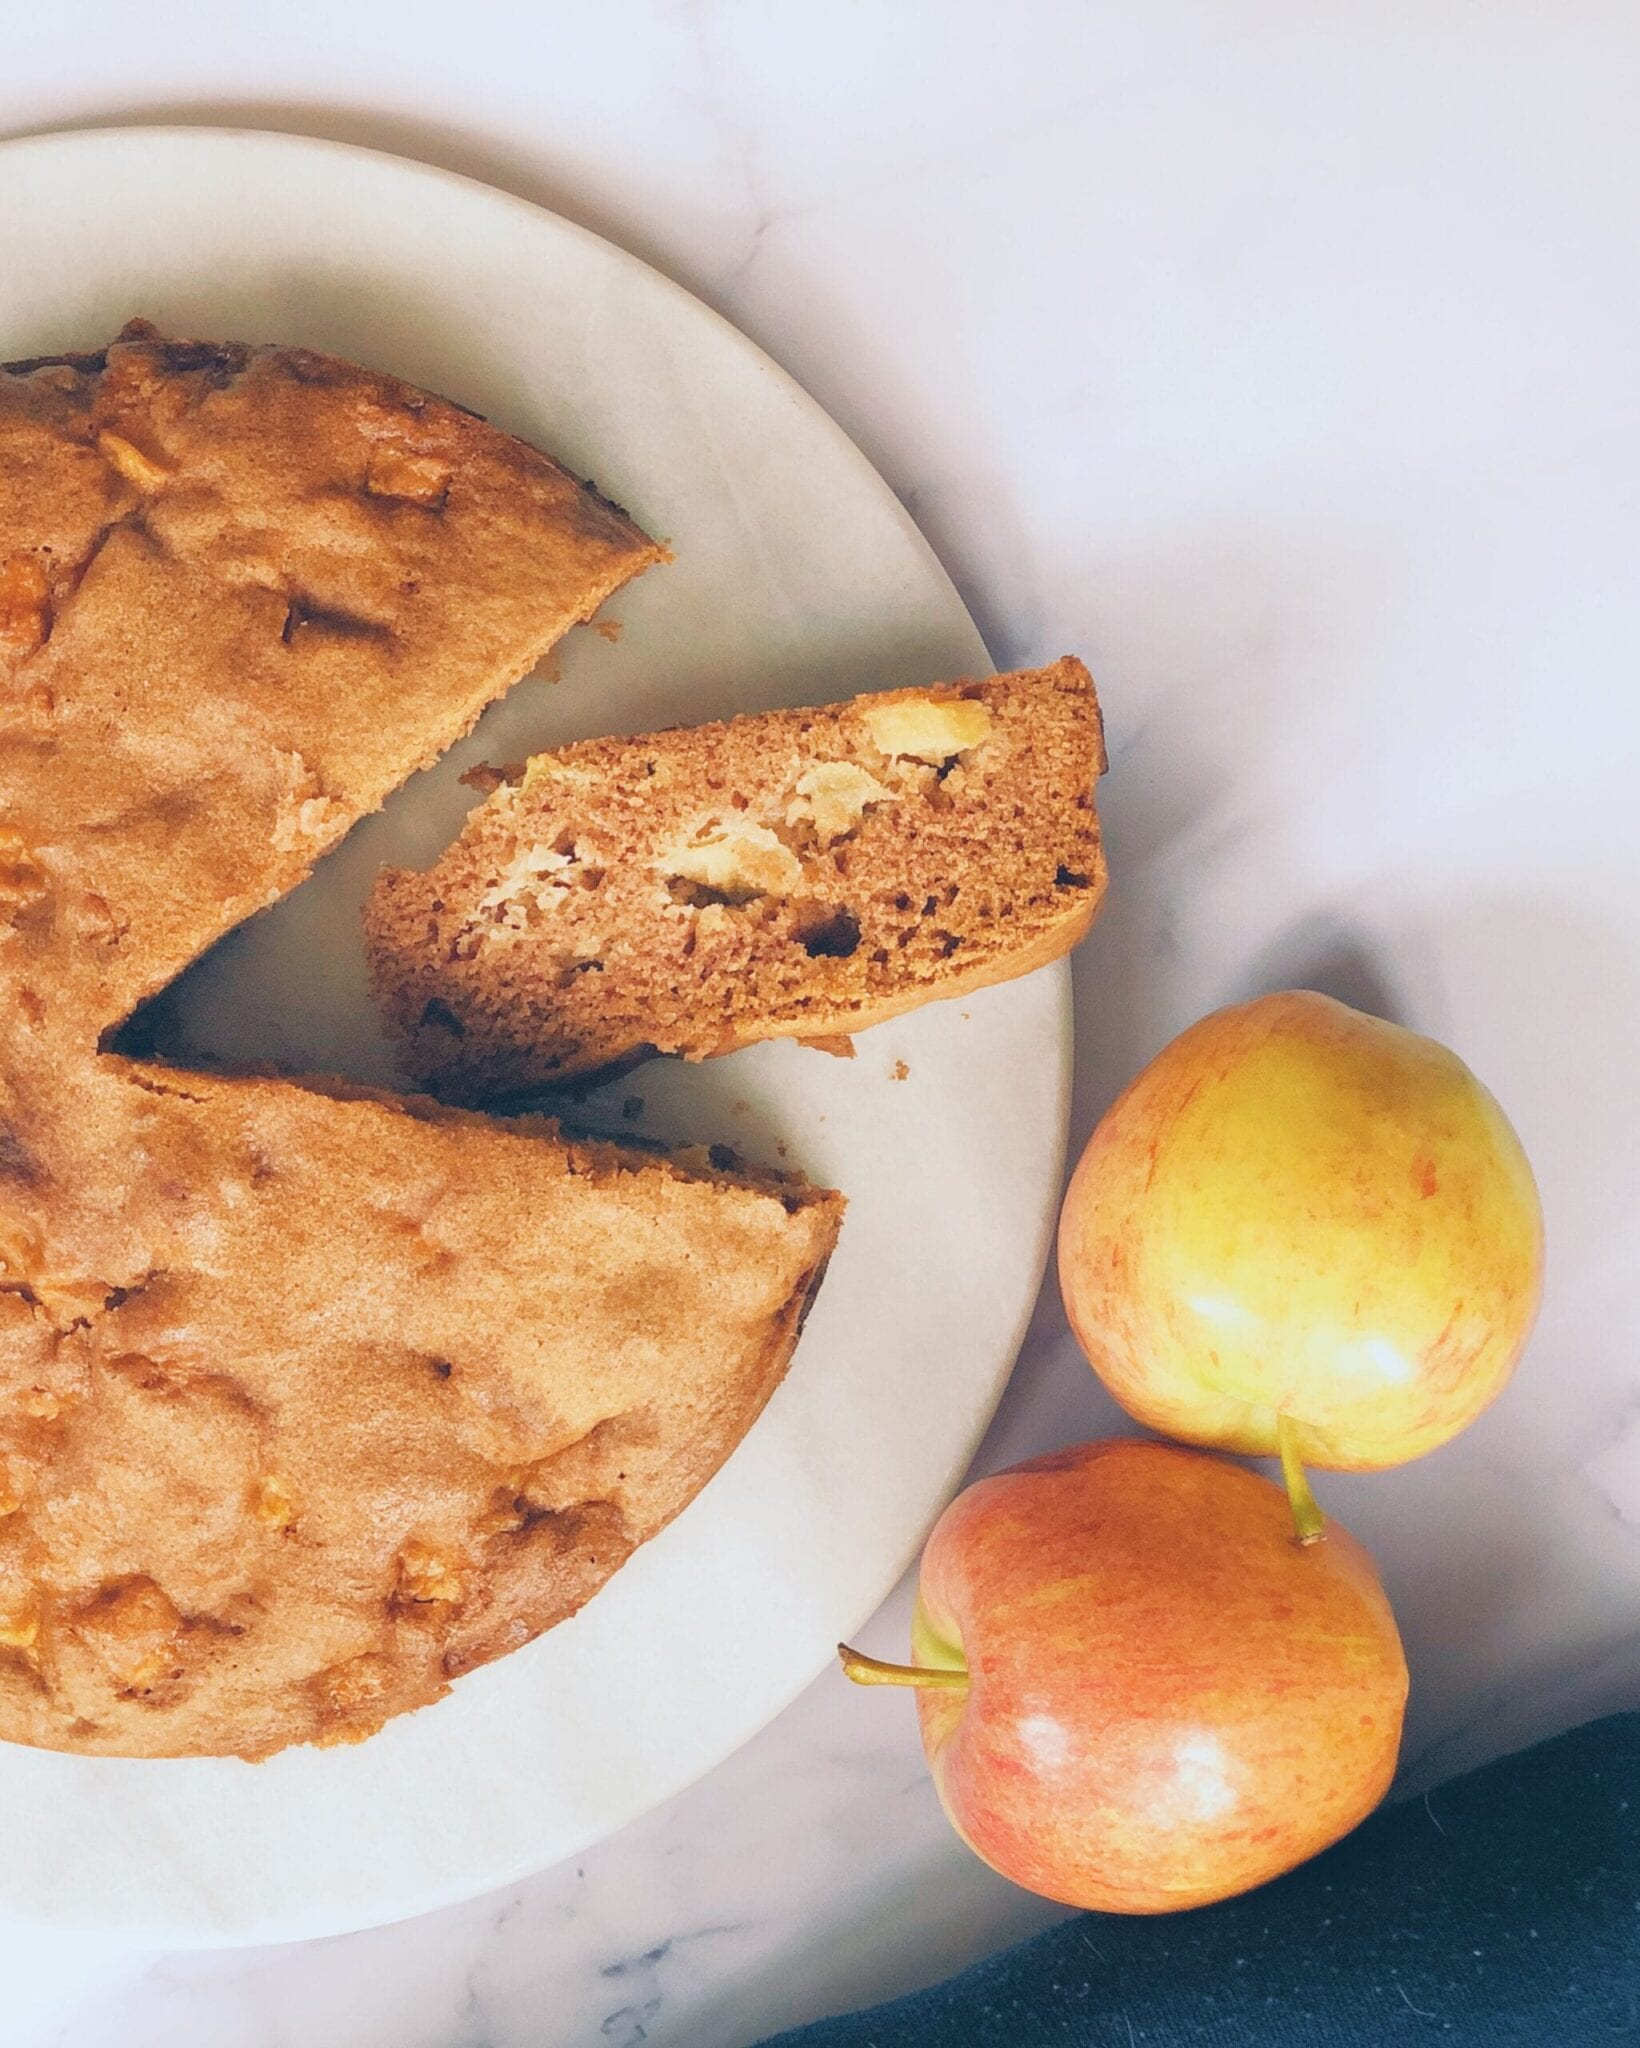 Slice of apple cake withe rest of cake and apples